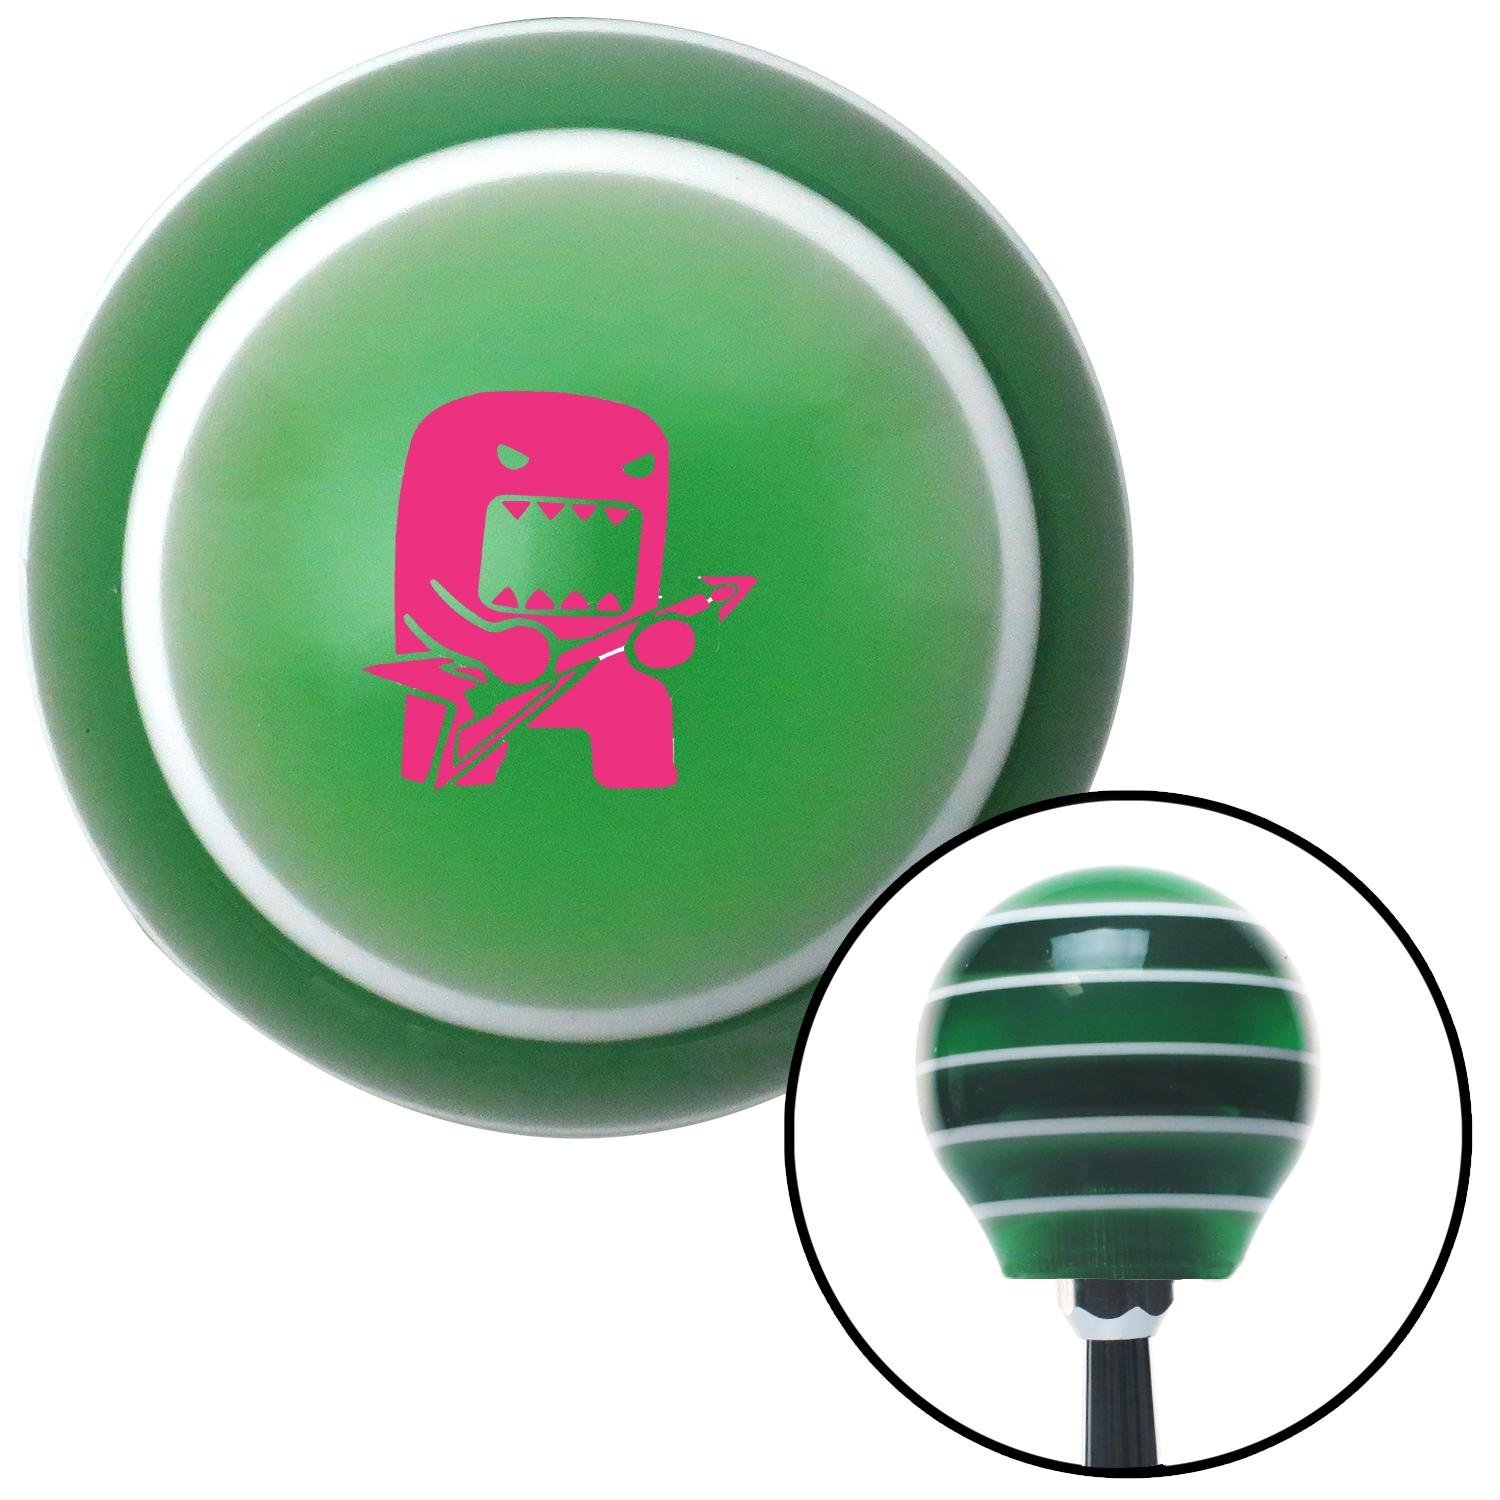 Pink Domo Jammin American Shifter 122148 Green Stripe Shift Knob with M16 x 1.5 Insert